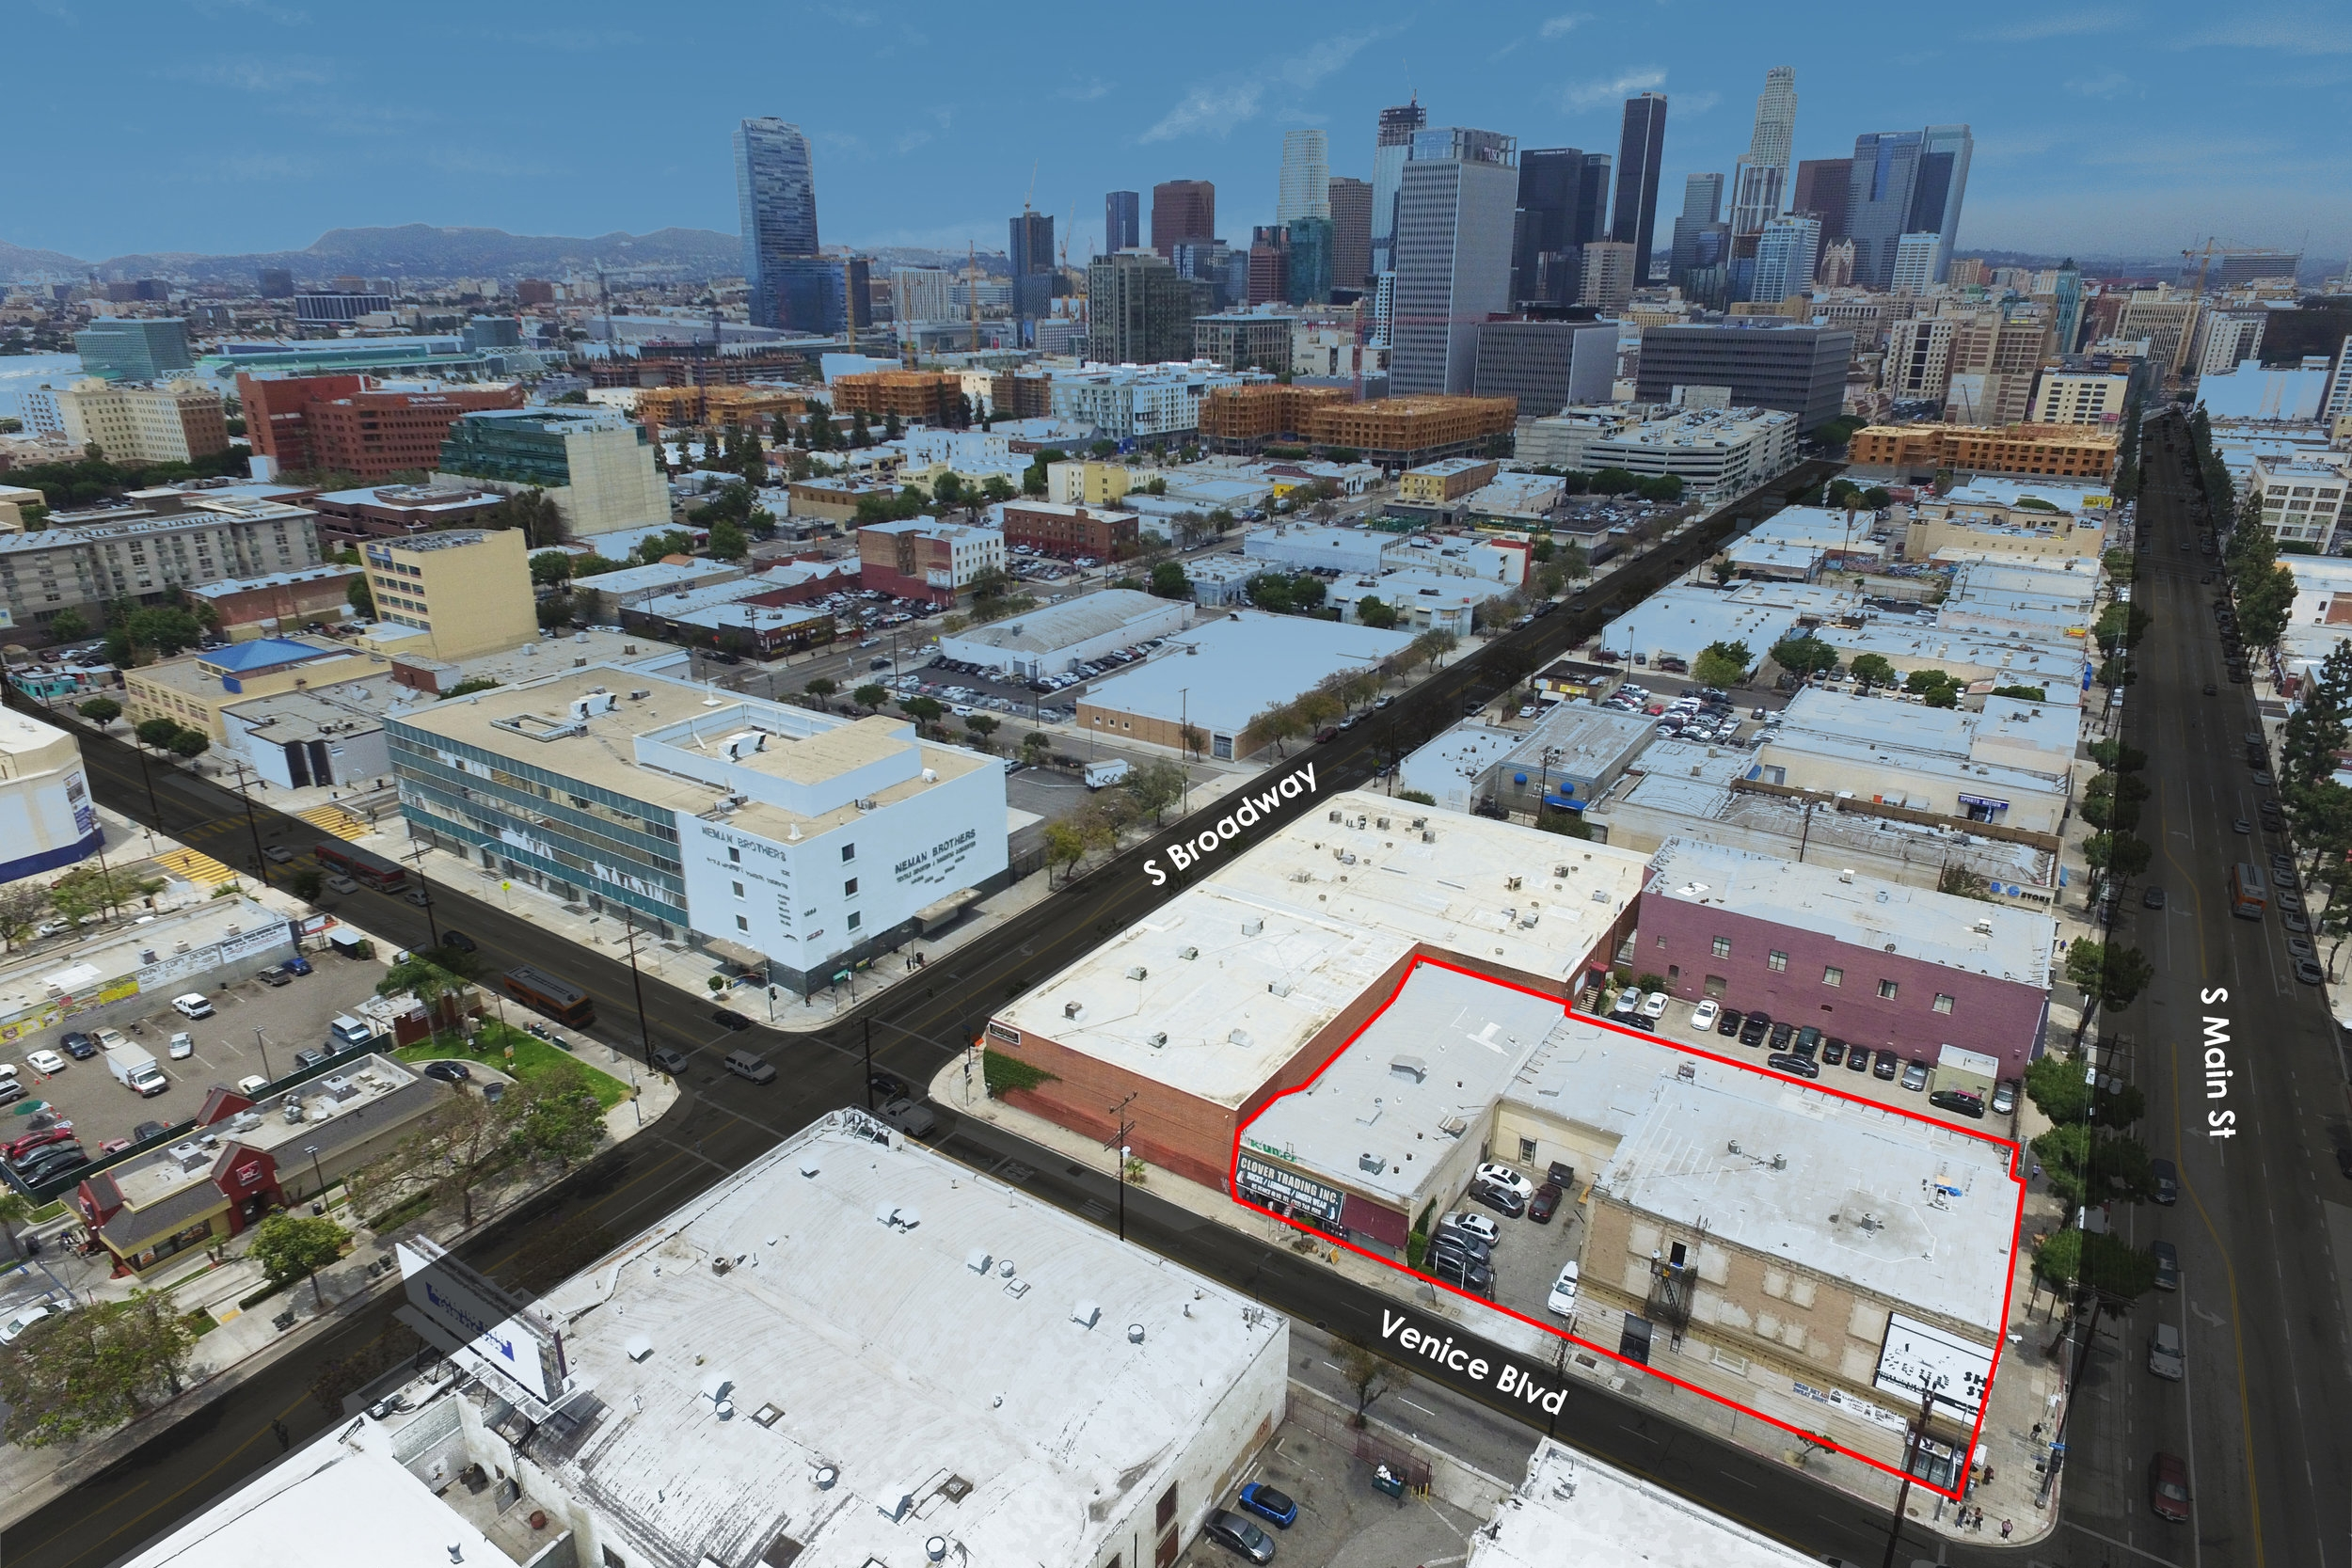 1525 south main street, los angeles, ca 90015 - - PRICE: $ 9,000,000- TYPE: Storefront Retail- SIZE: 41,535 SF